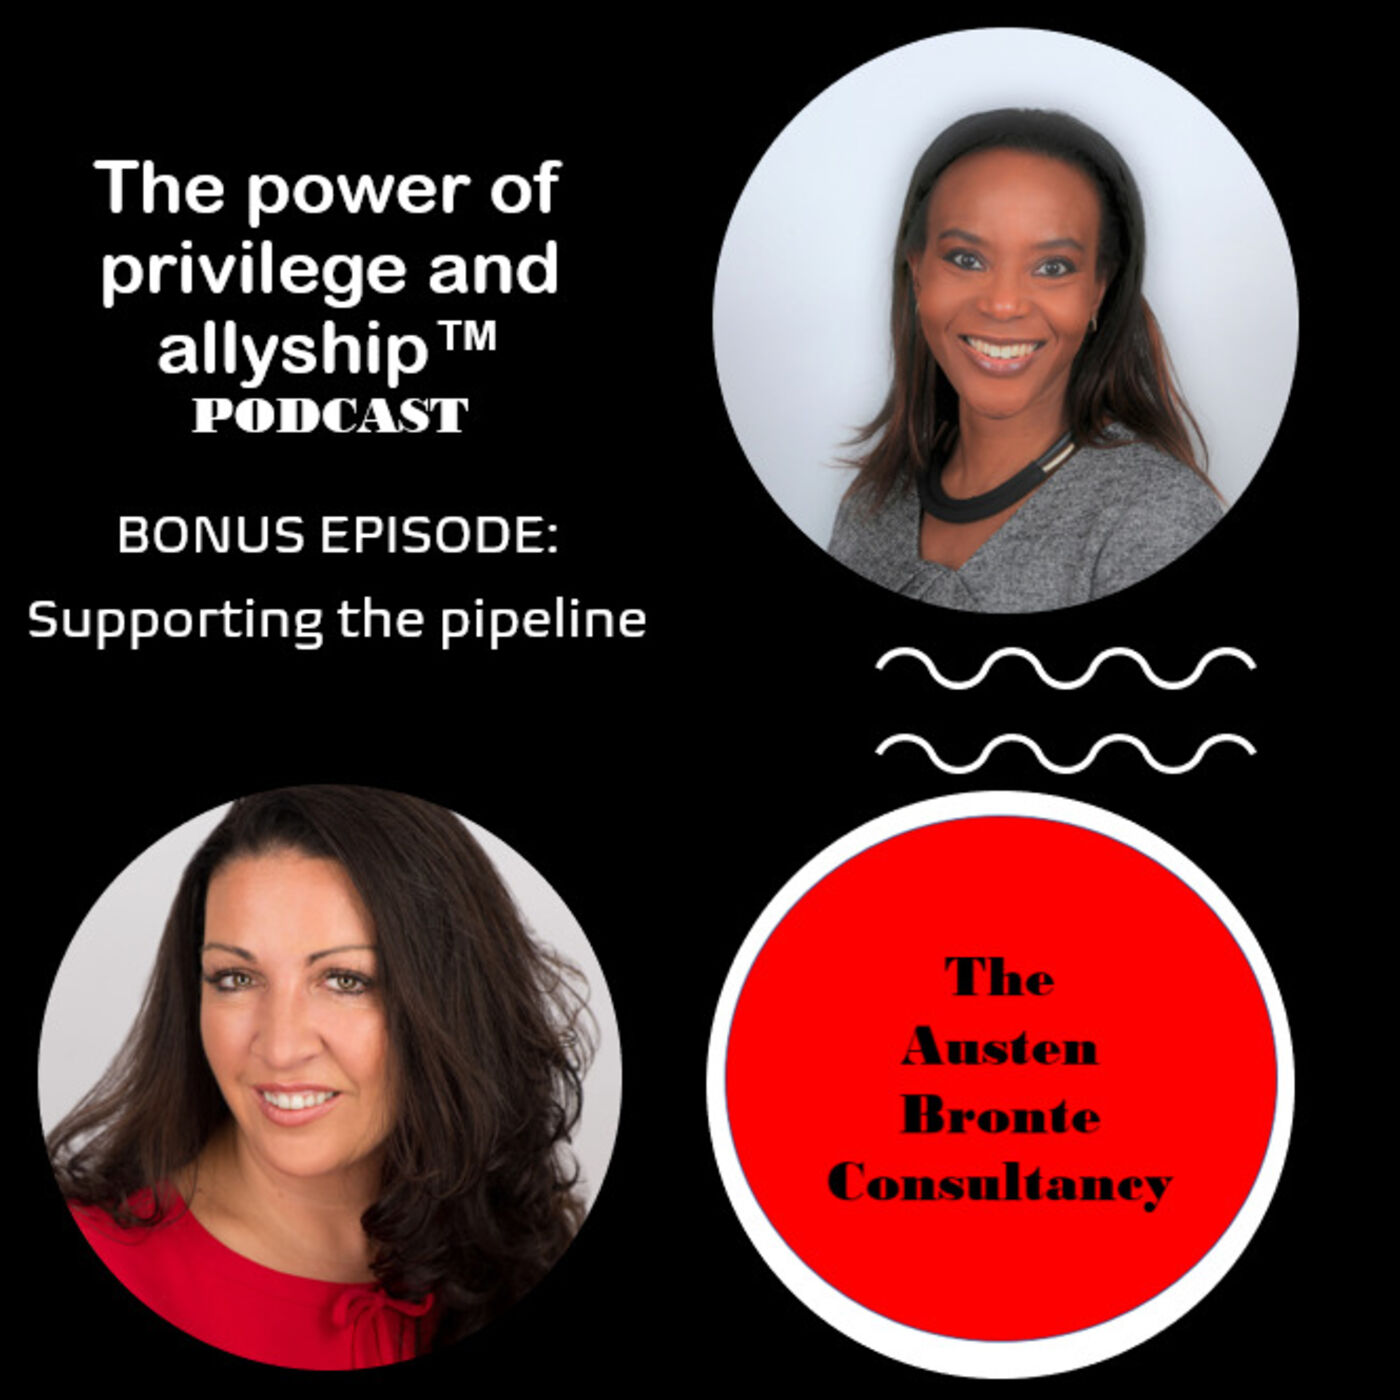 S1 BONUS EPISODE: Supporting the pipeline feat. Vanessa Vallely OBE